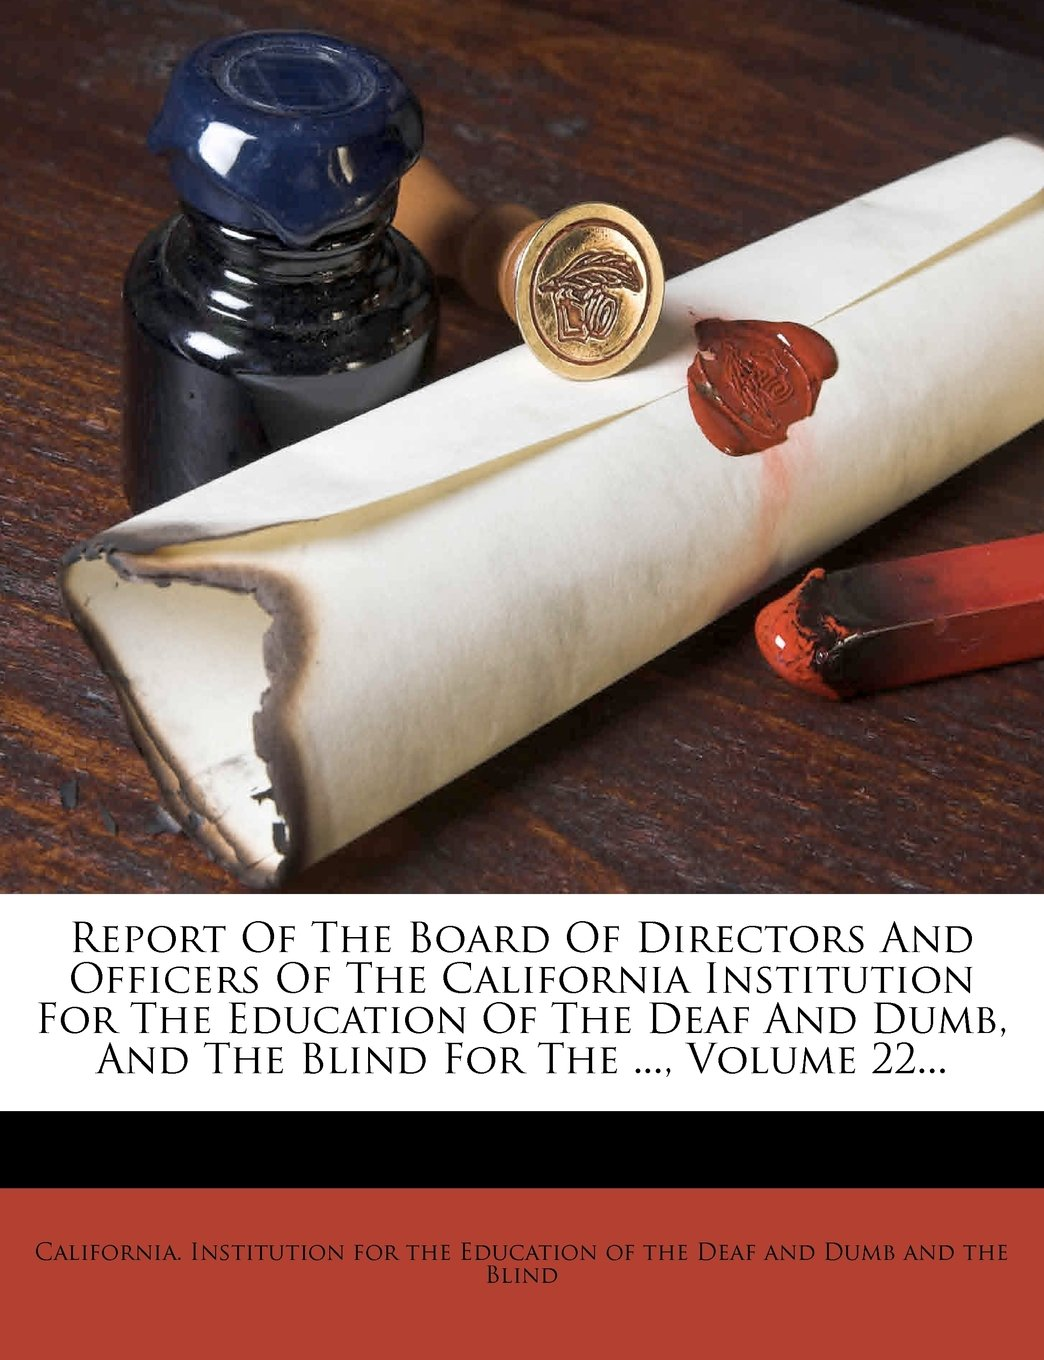 Download Report Of The Board Of Directors And Officers Of The California Institution For The Education Of The Deaf And Dumb, And The Blind For The ..., Volume 22... pdf